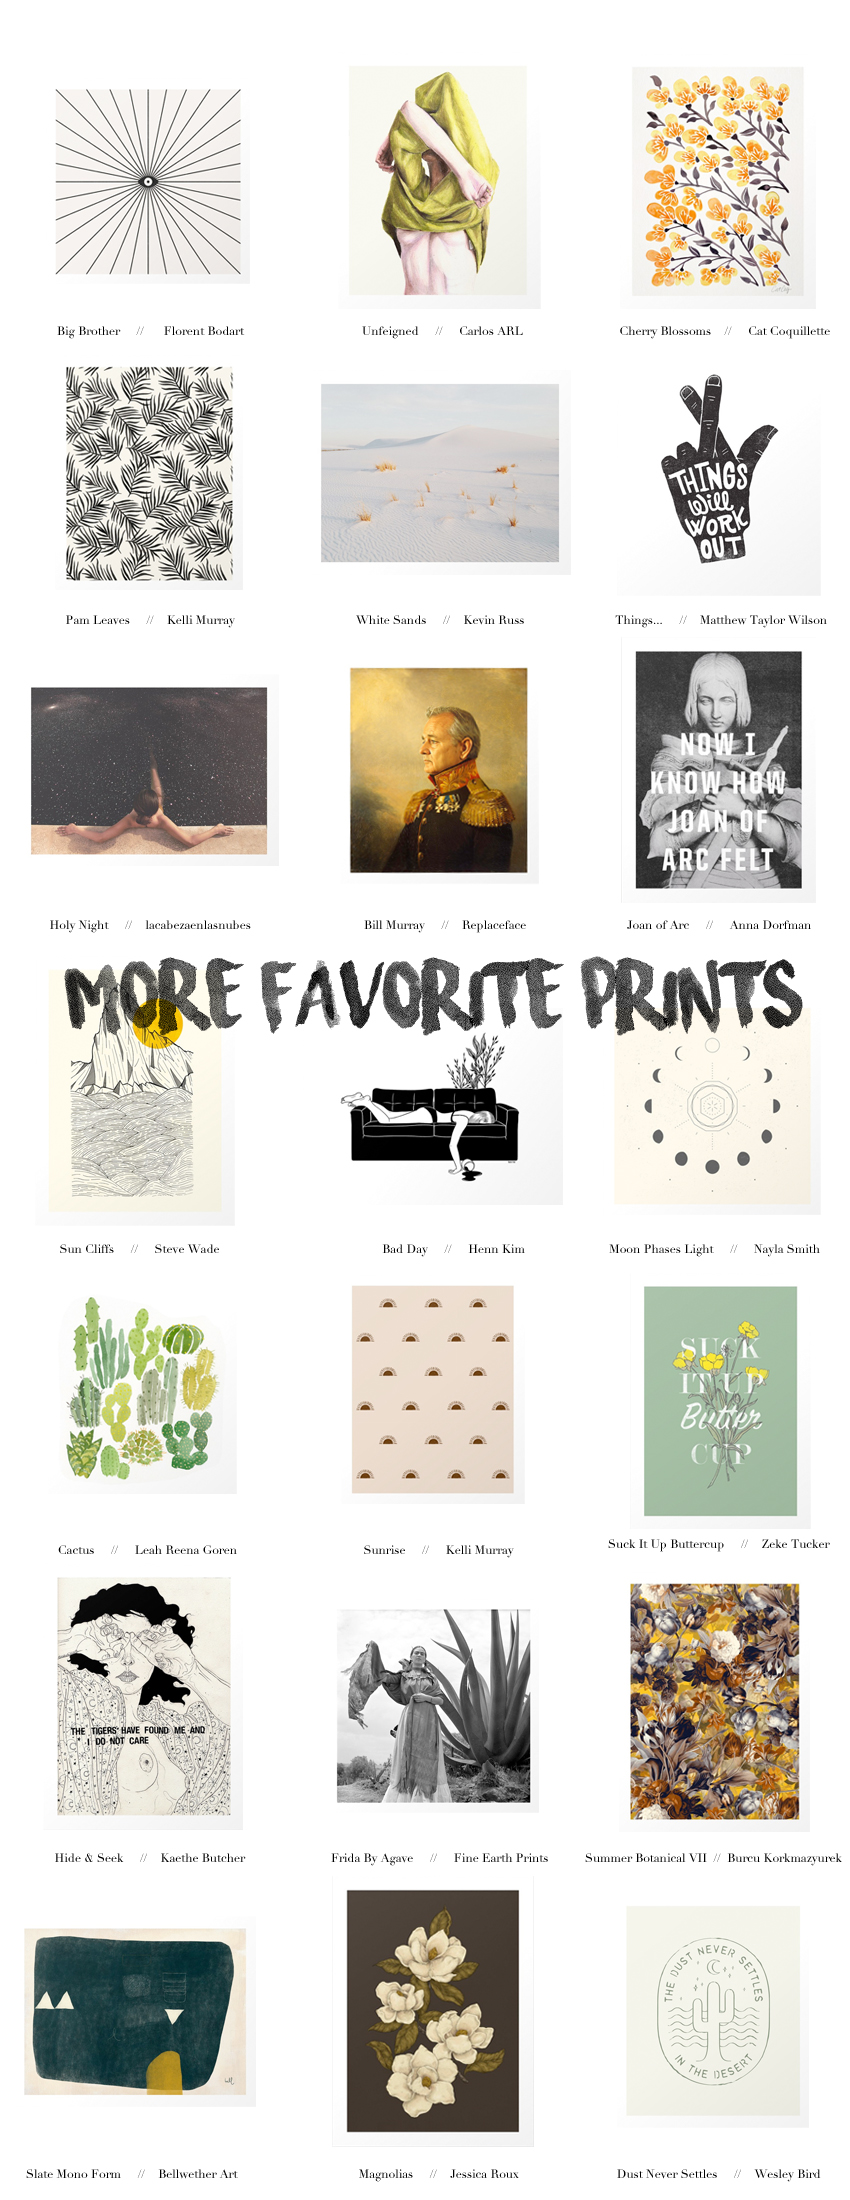 more-print-favorites-hazel-and-scout-society-6-art.jpg